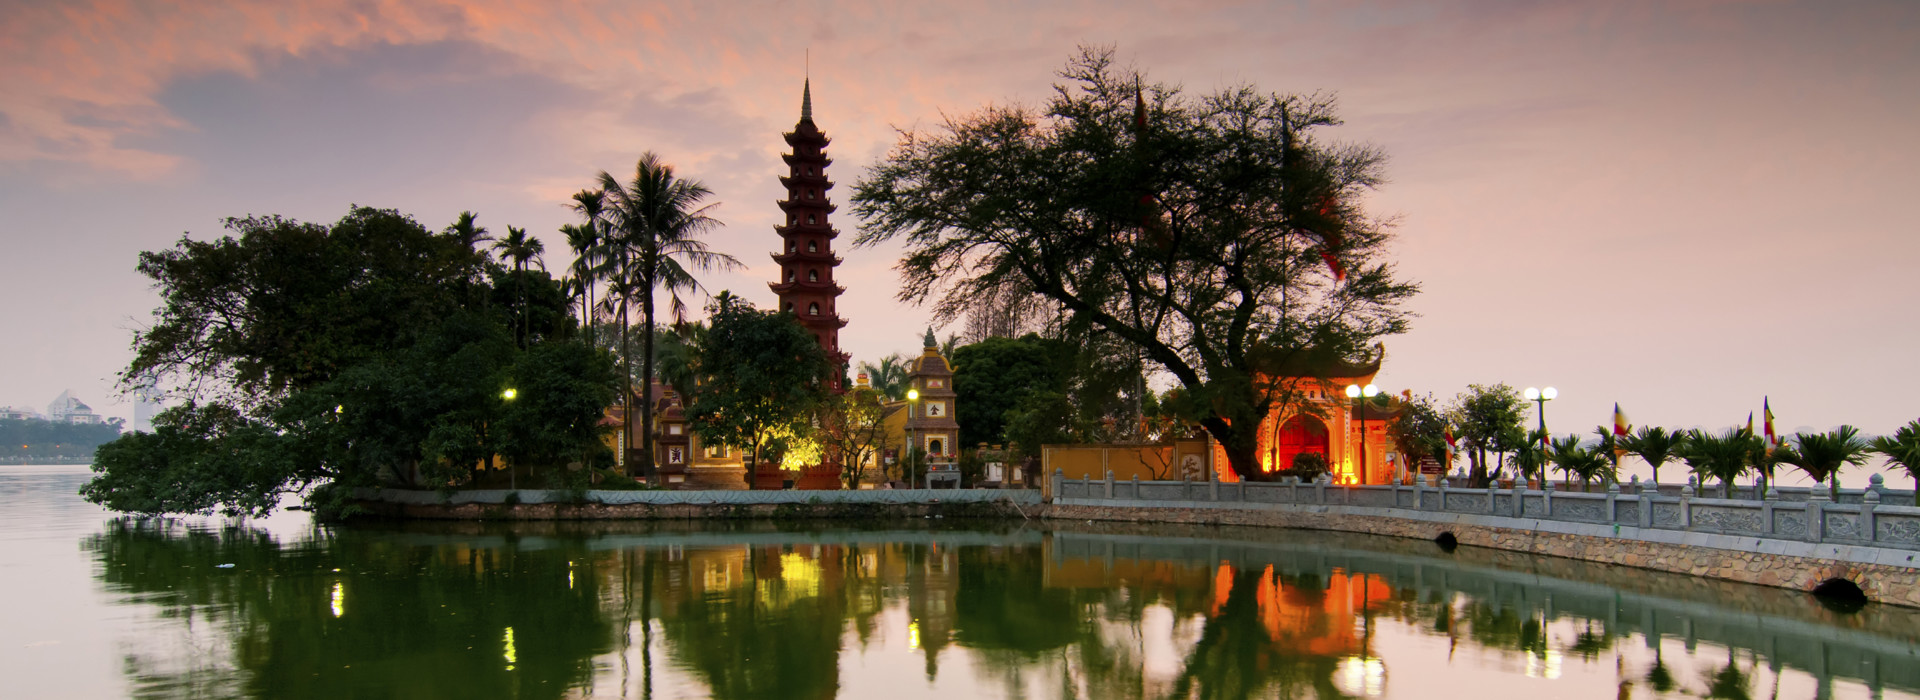 Vietnam's Top 5 Hotel Rooms with a View - Original Travel Blog